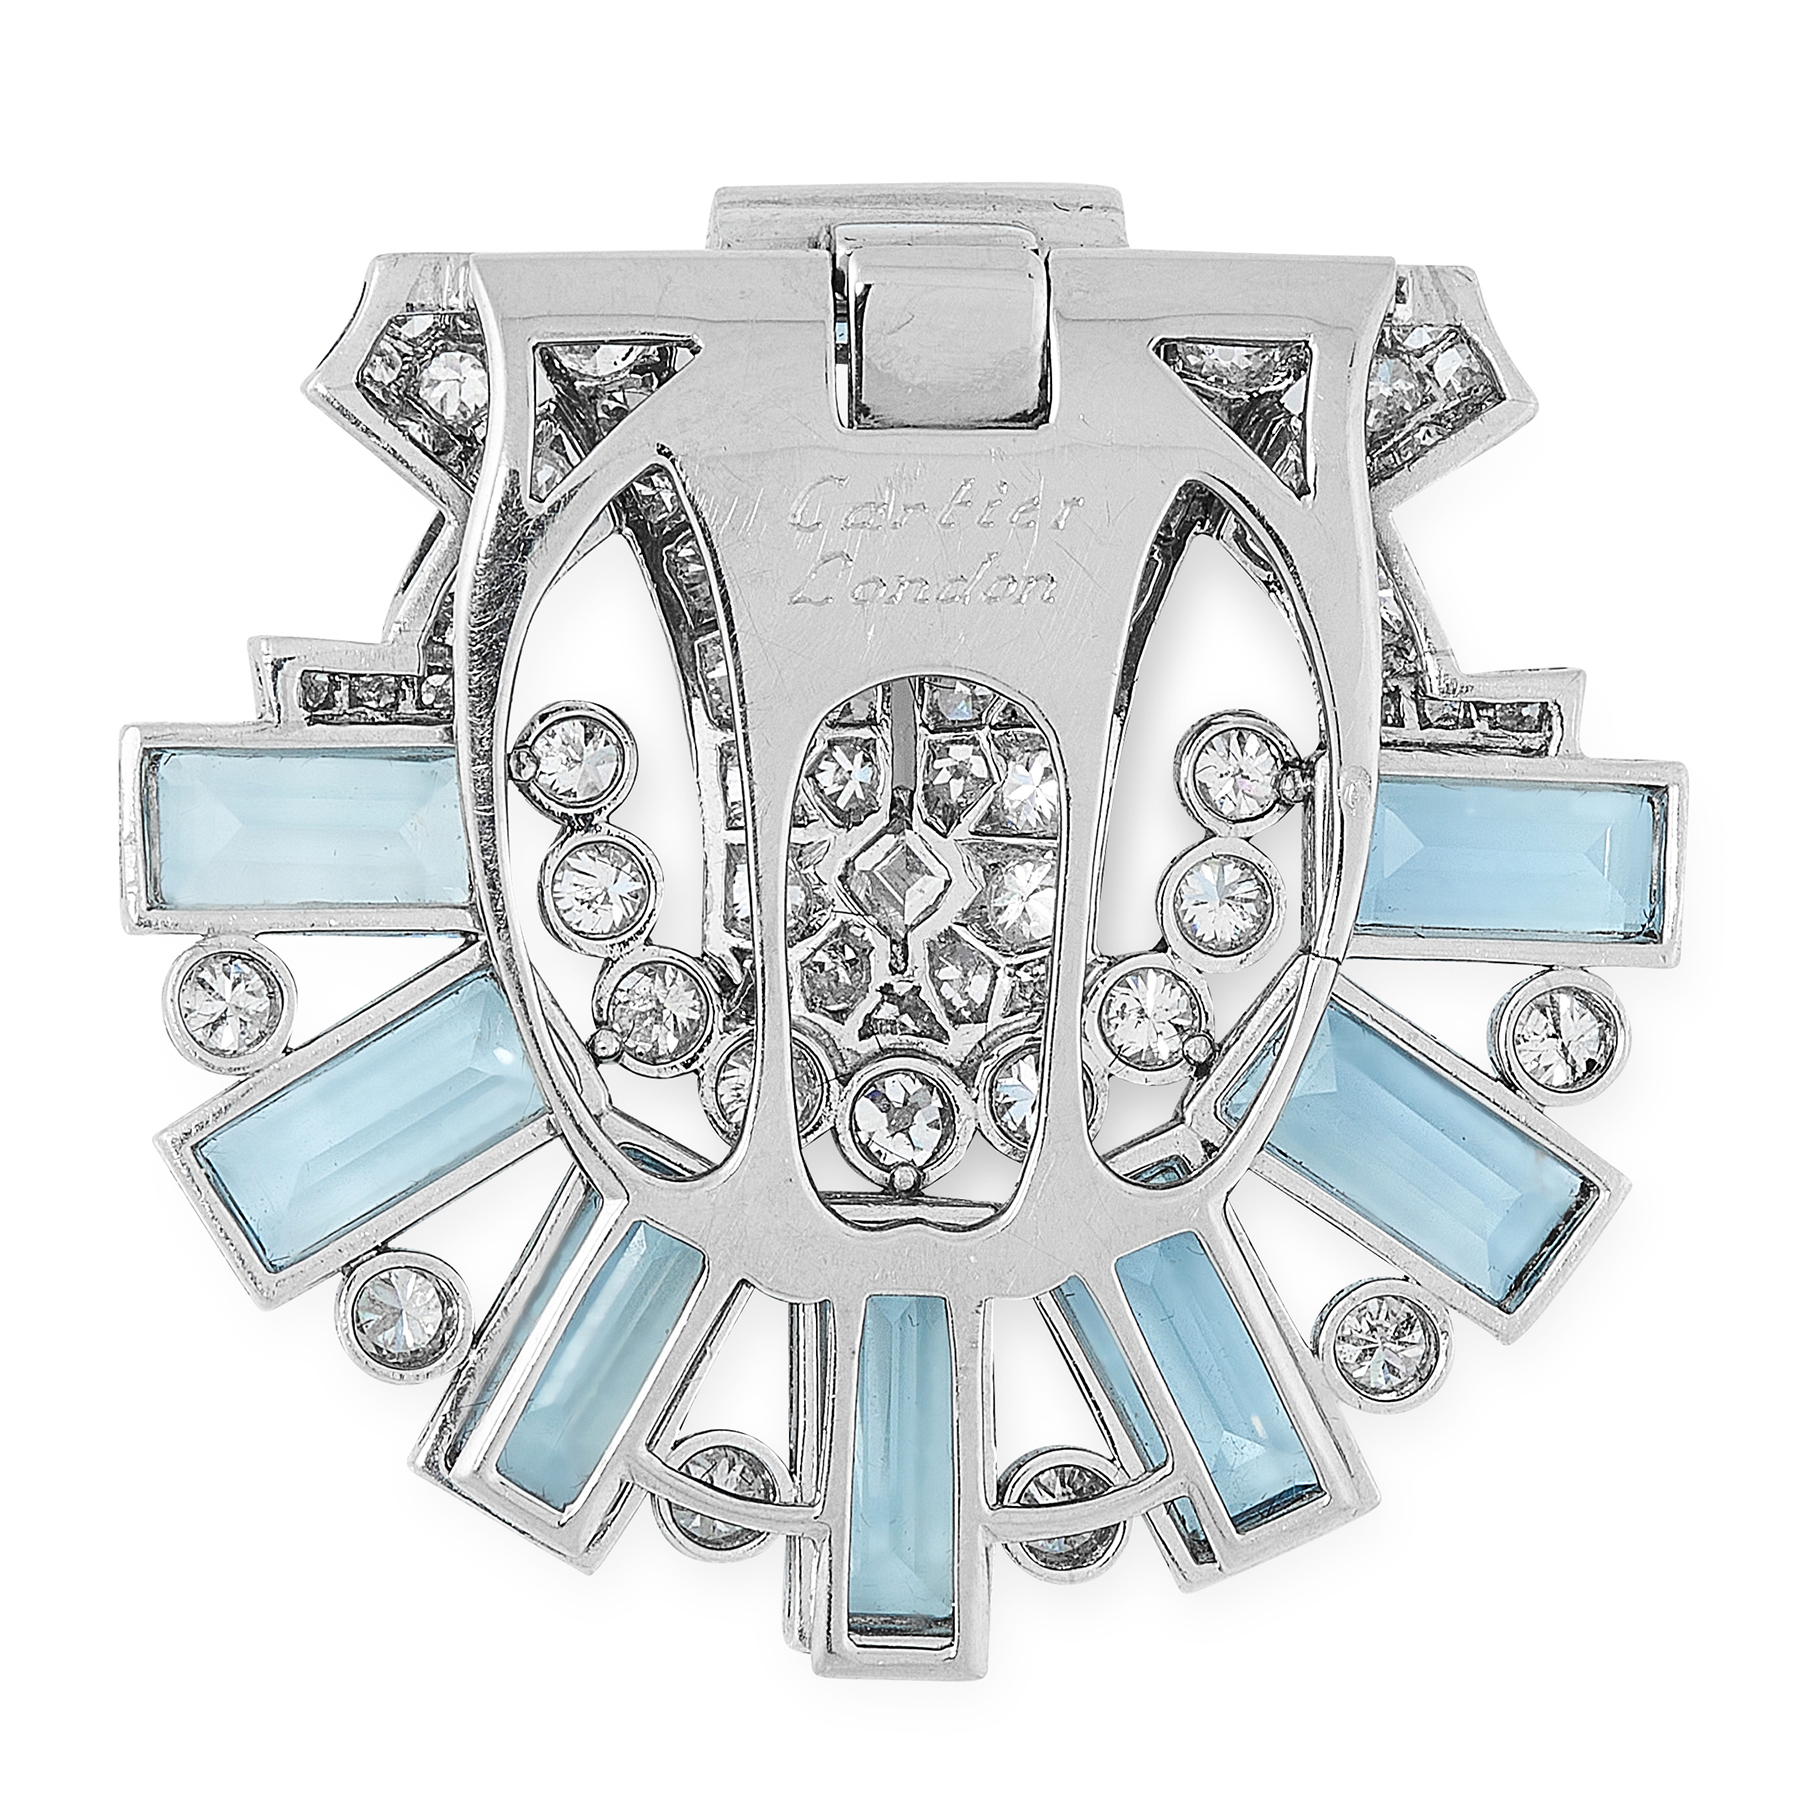 A PAIR OF AQUAMARINE AND DIAMOND CLIP BROOCHES, CARTIER CIRCA 1940 in 18ct white gold, each set with - Image 2 of 2